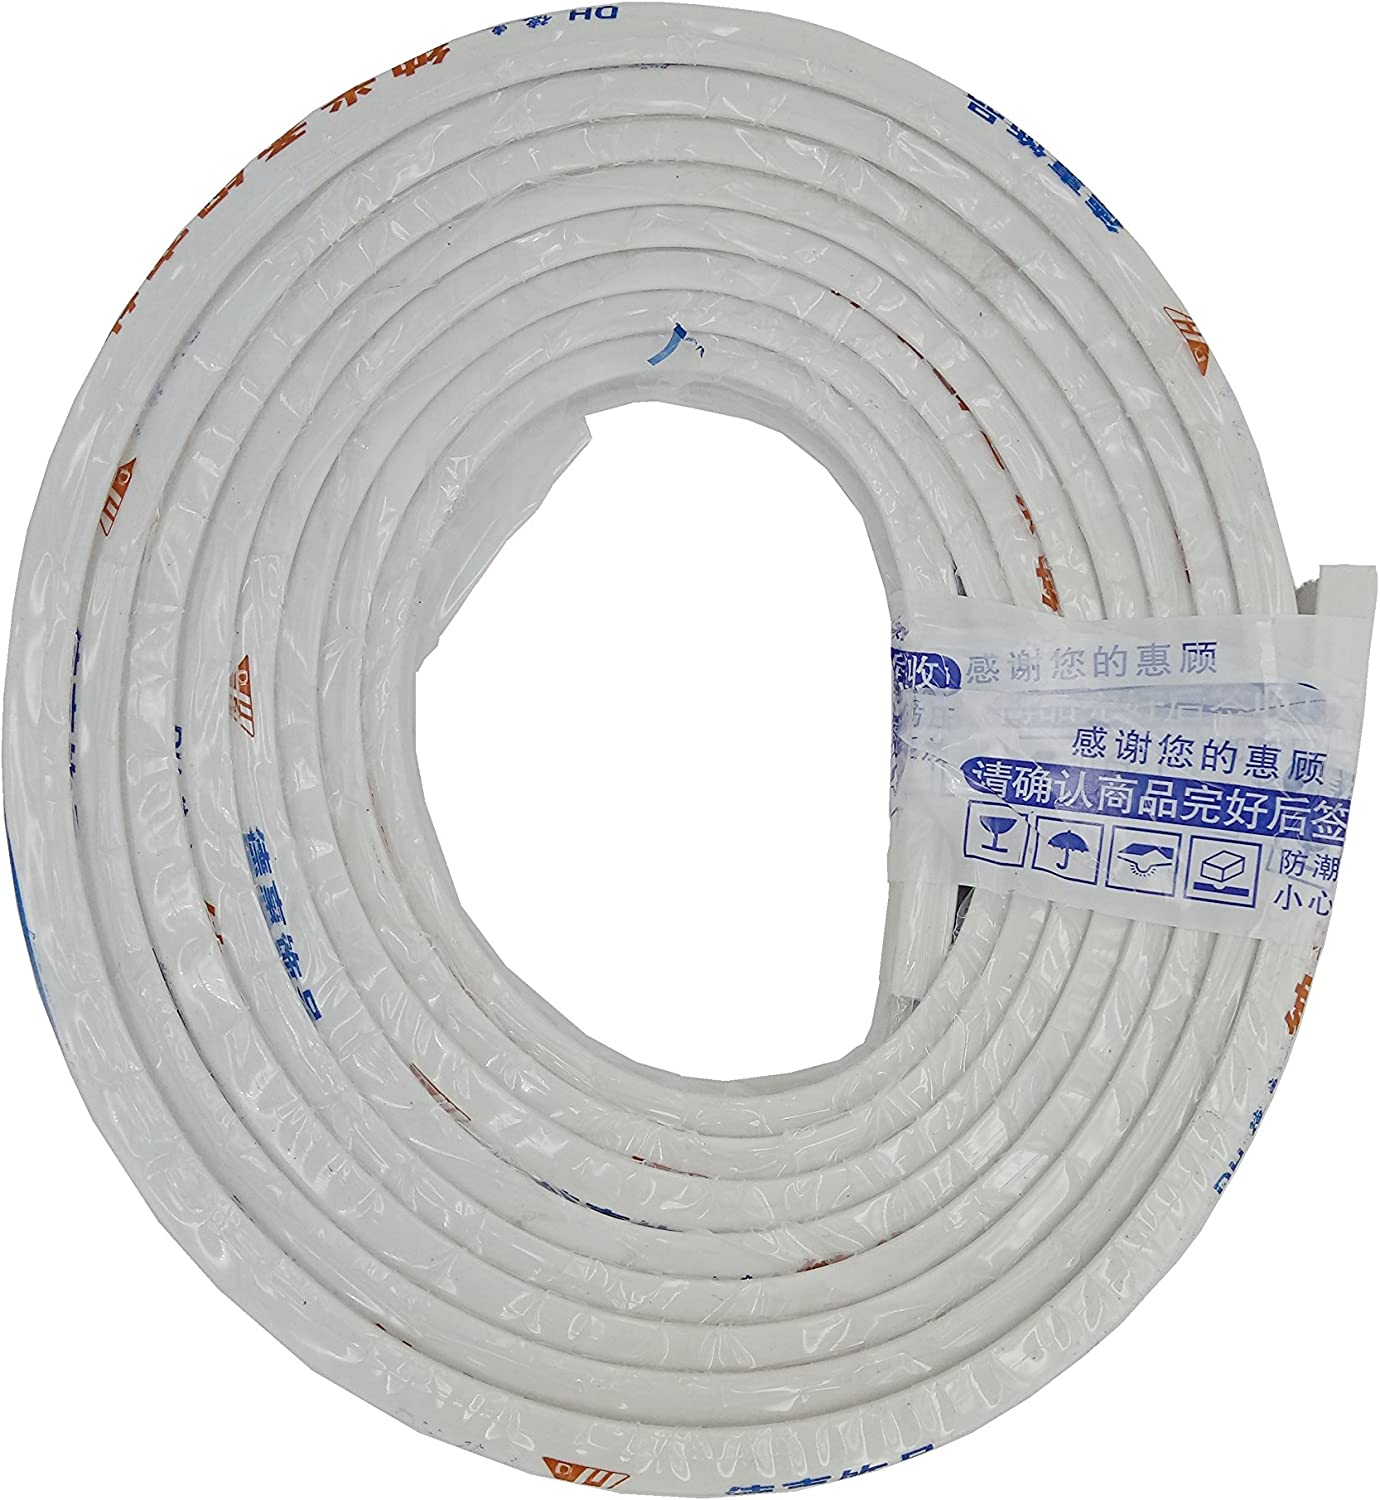 Go2Perfect Plastic Flexible Bendable Curved Curtain Track 16.4ft 5 Meters Top Ceiling Mounting Strong Durable for Heavy Curtains Replacement Guarantee If Have Any Quality Issues